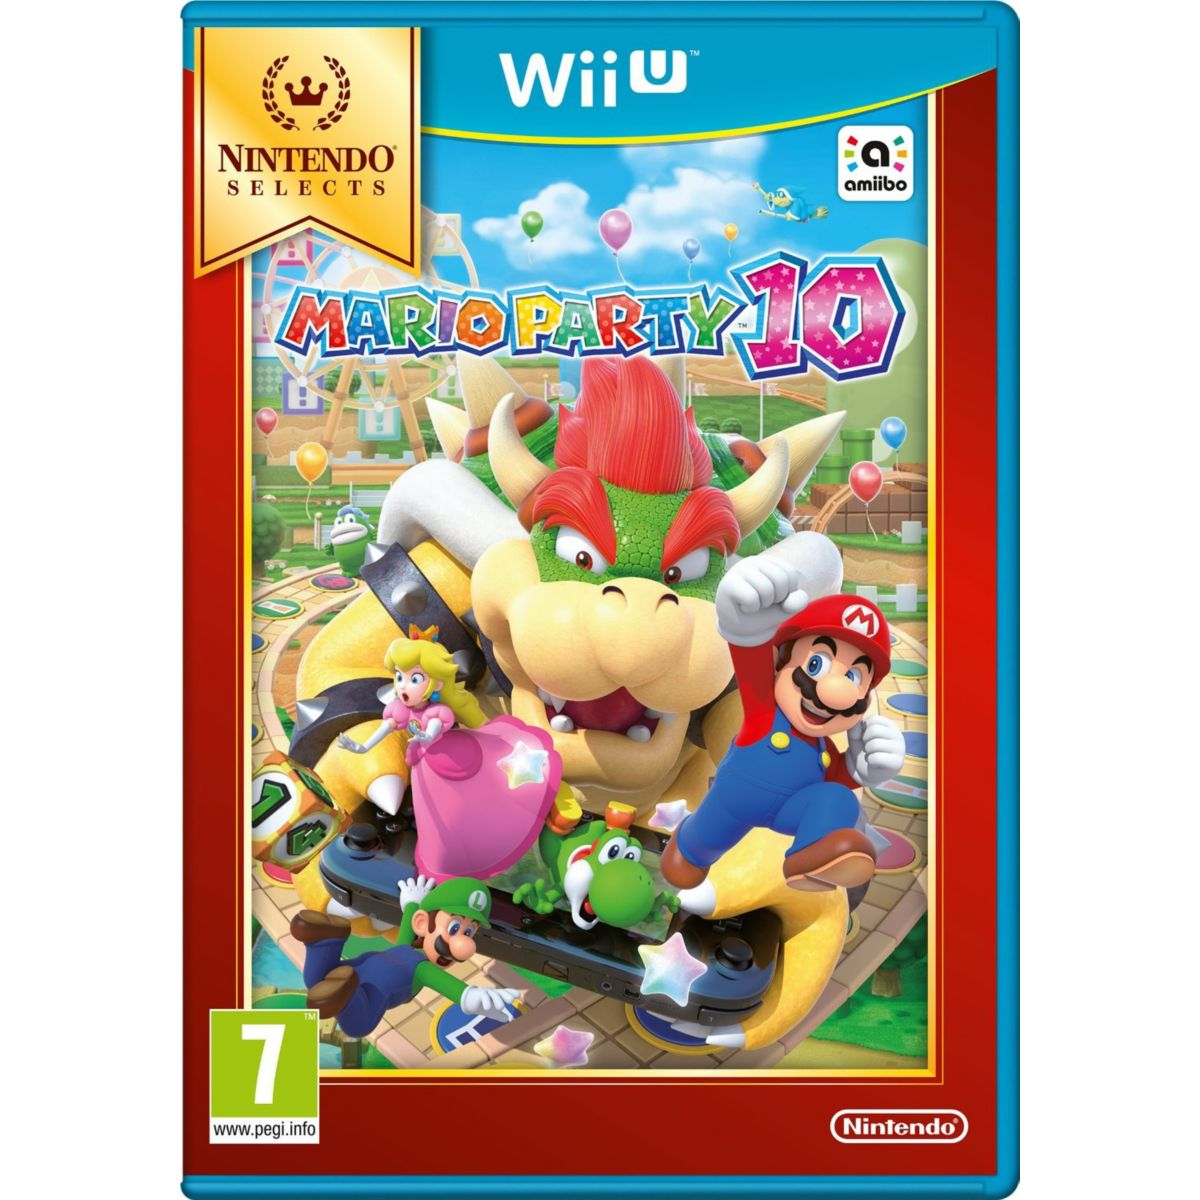 Jeu Wii U NINTENDO Mario Party 10 Select